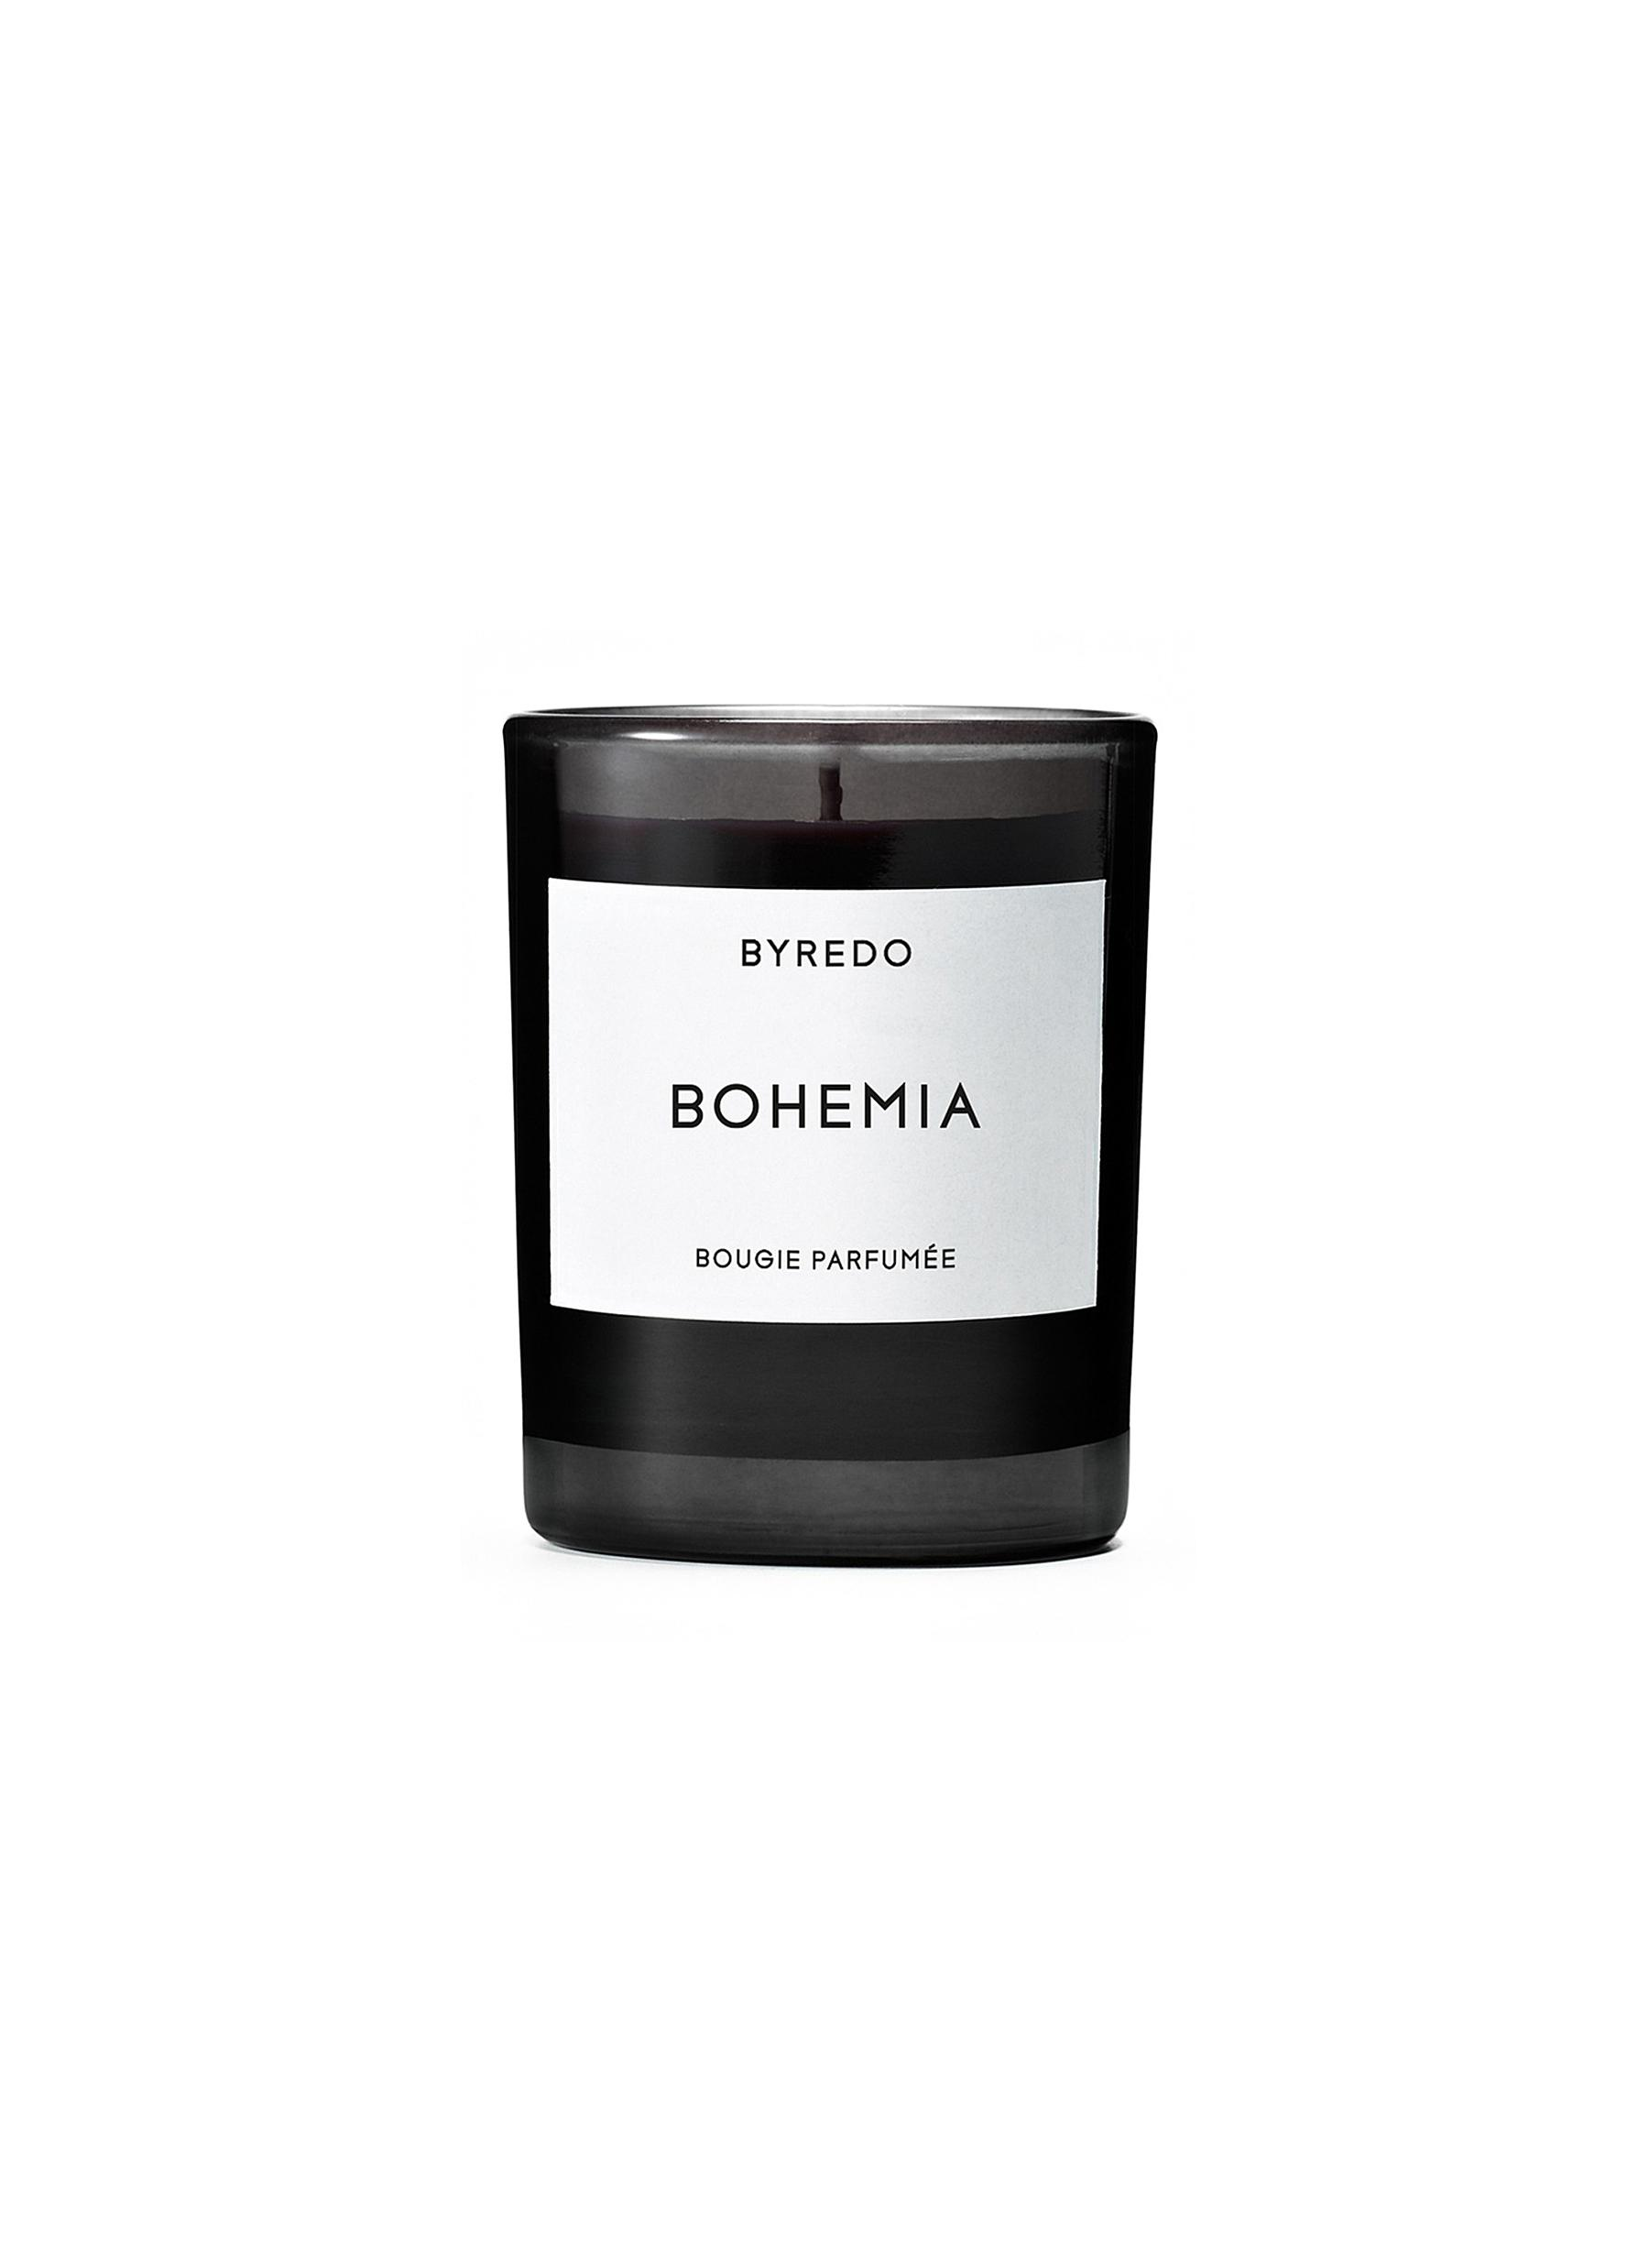 Bohemia mini fragranced candle 70g by BYREDO